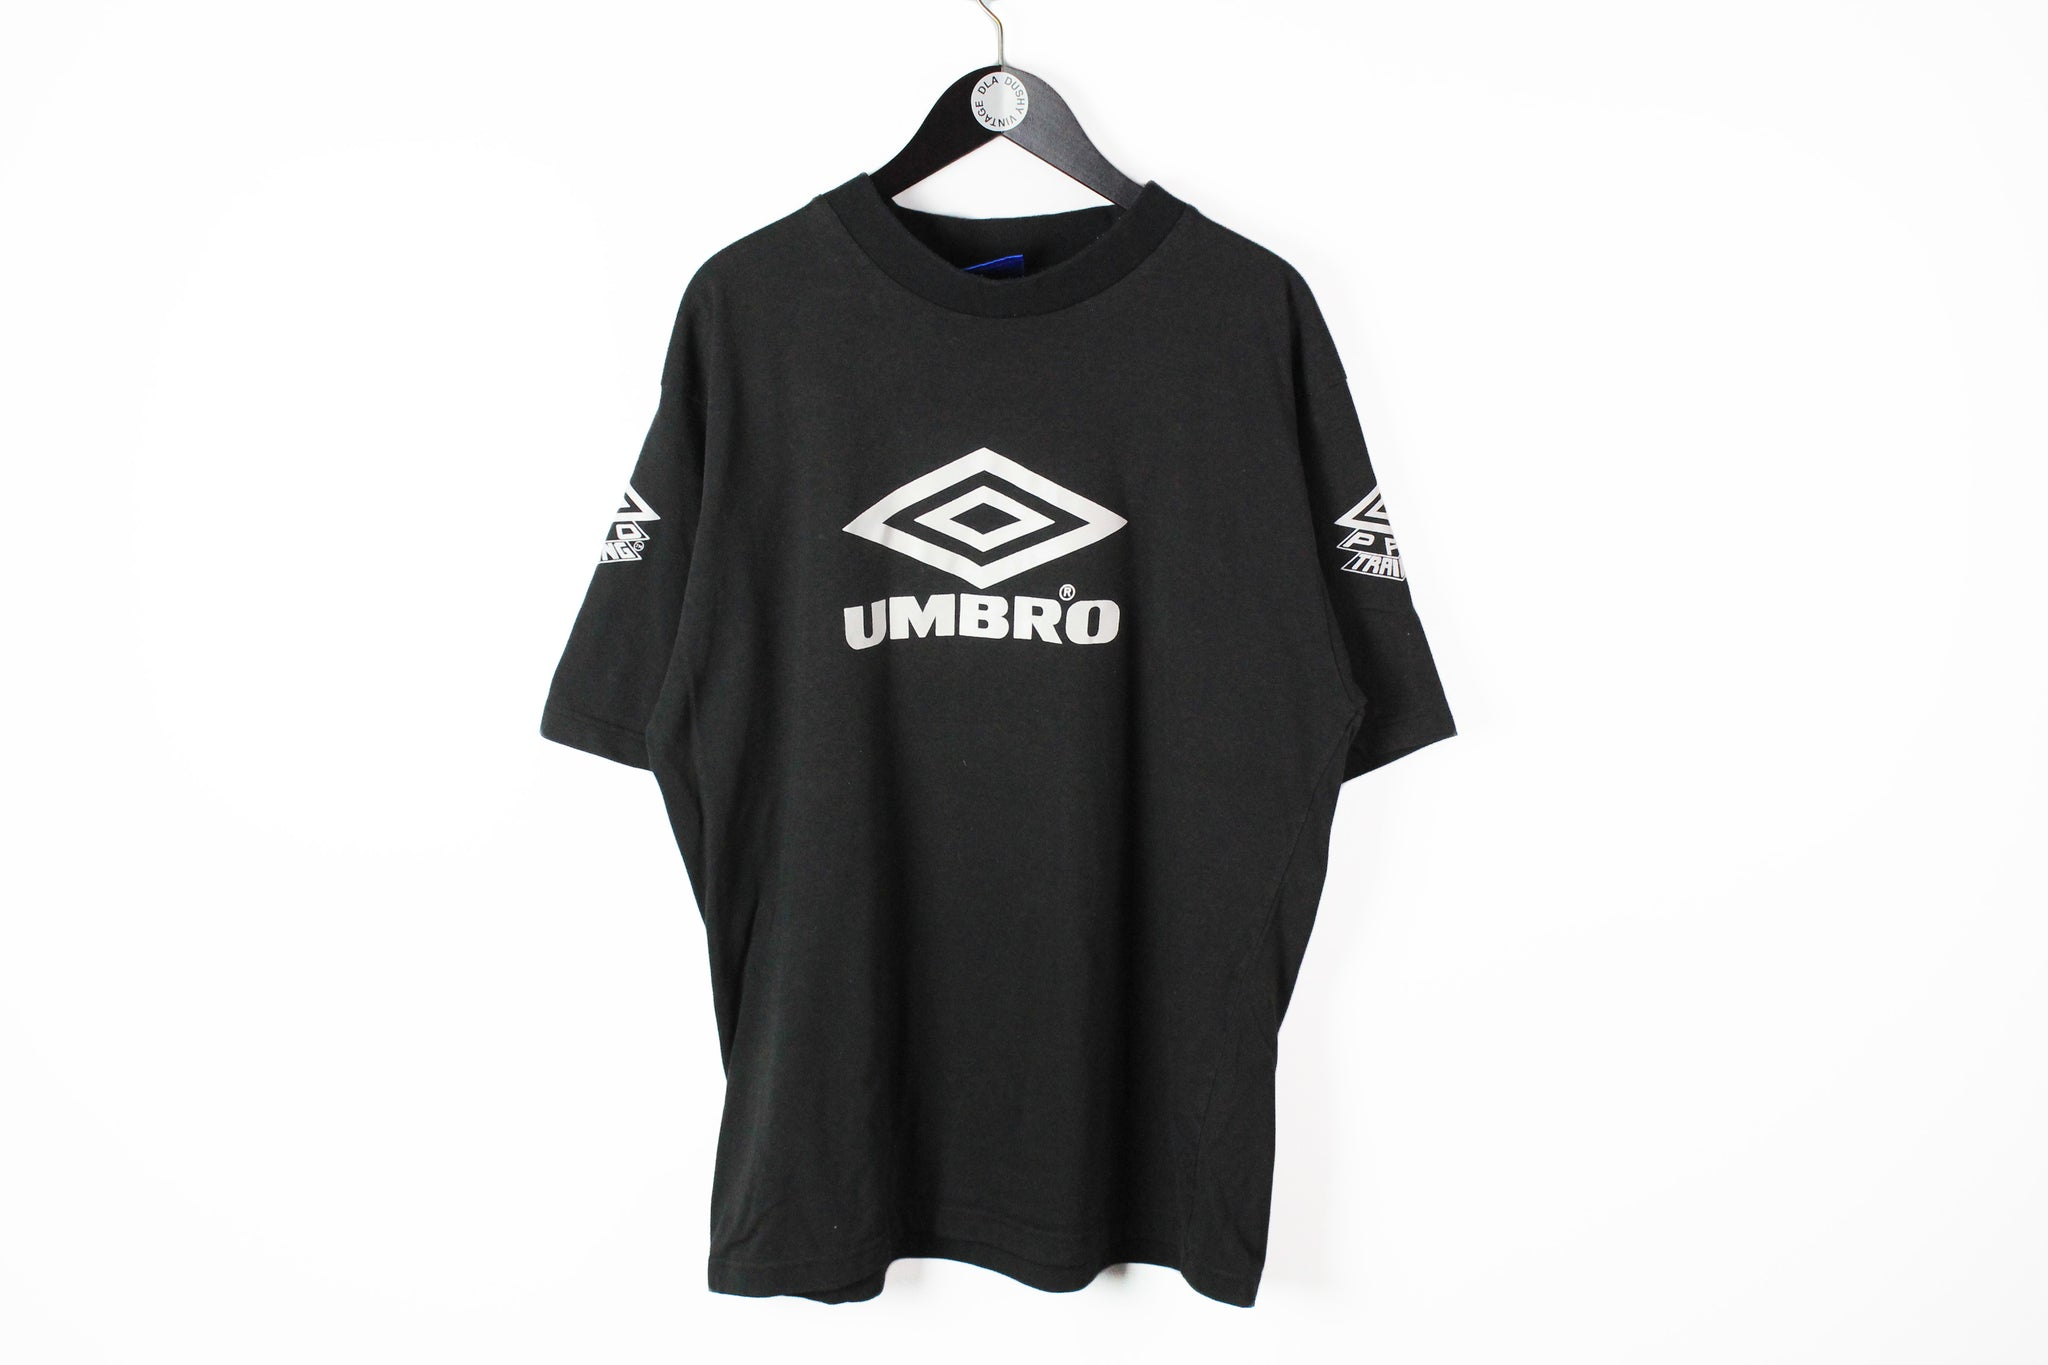 Vintage Umbro T-Shirt XXLarge black big logo 90s retro style cotton tee